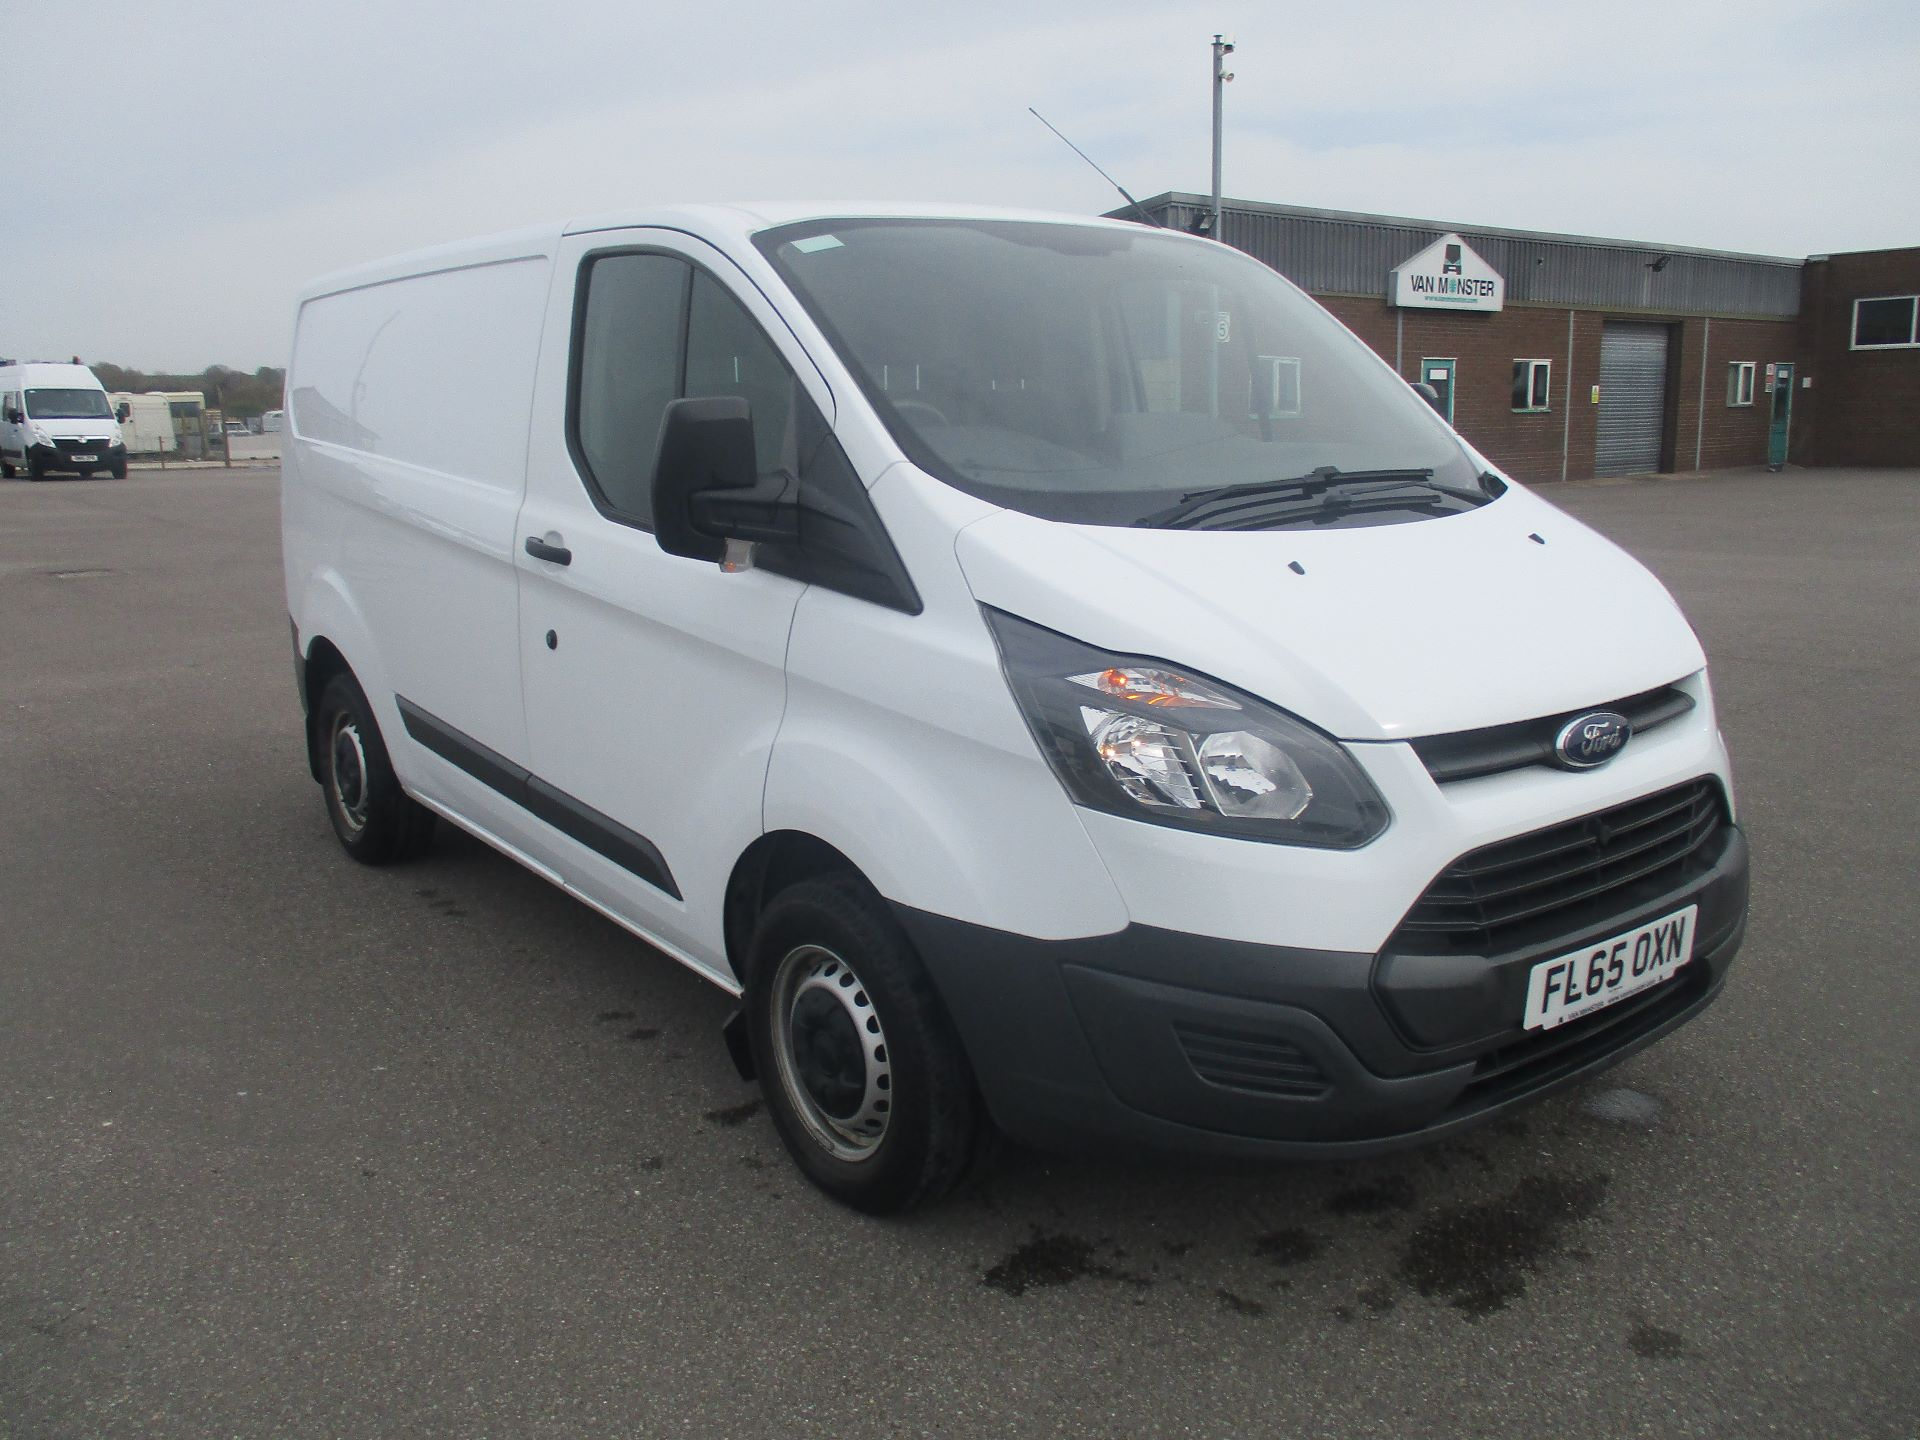 2015 Ford Transit Custom 290 L1 DIESEL FWD 2.2 TDCI 100PS LOW ROOF VAN EURO 5 (FL65OXN)